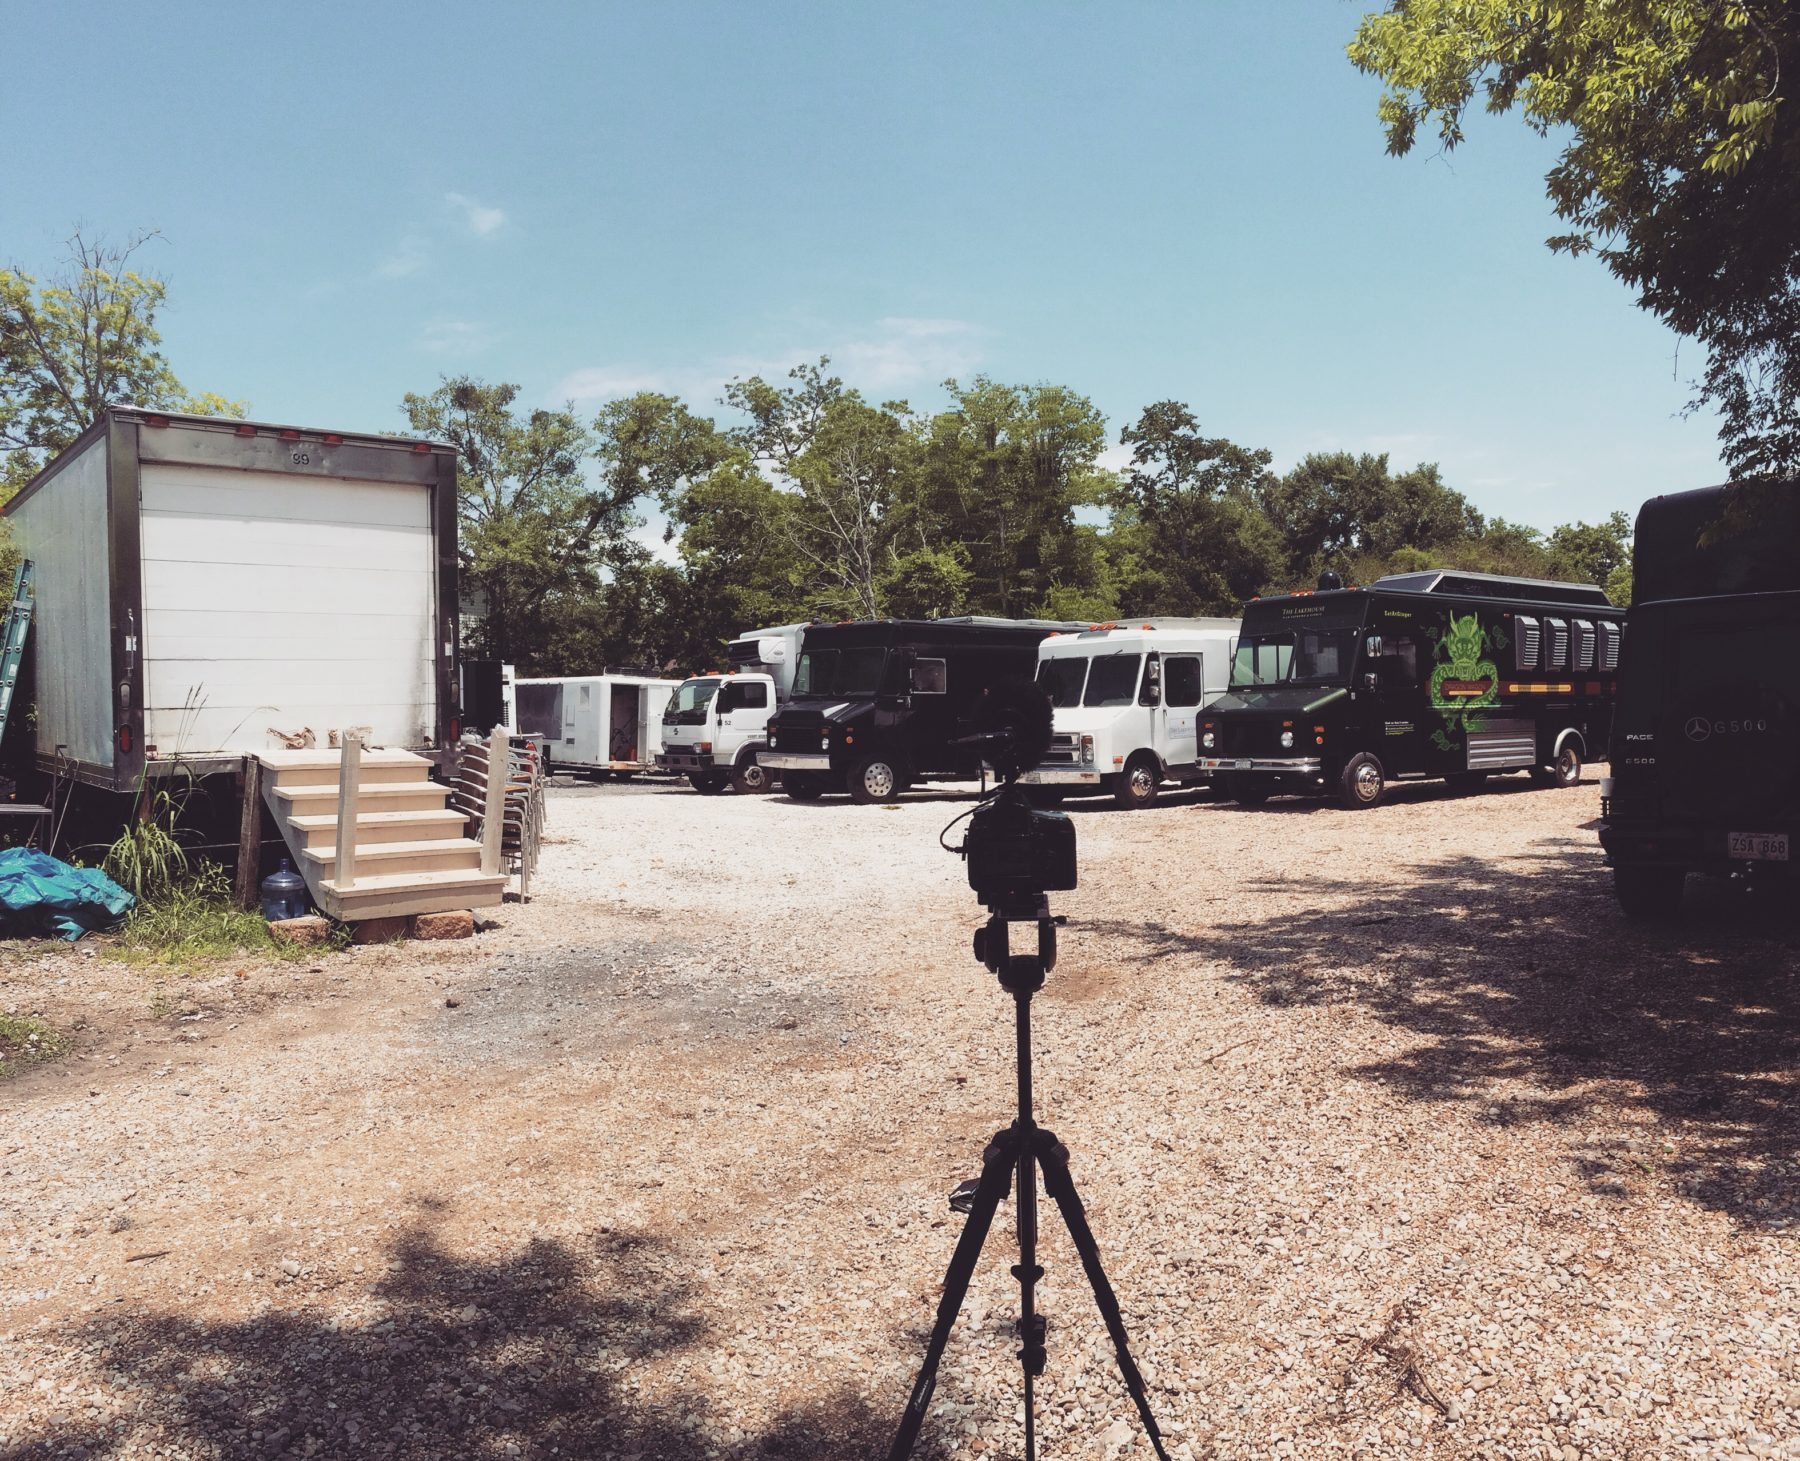 The Lake House -- Catering the film industry in Louisiana takes trucks, lots of trucks. #supportfilminlouisiana